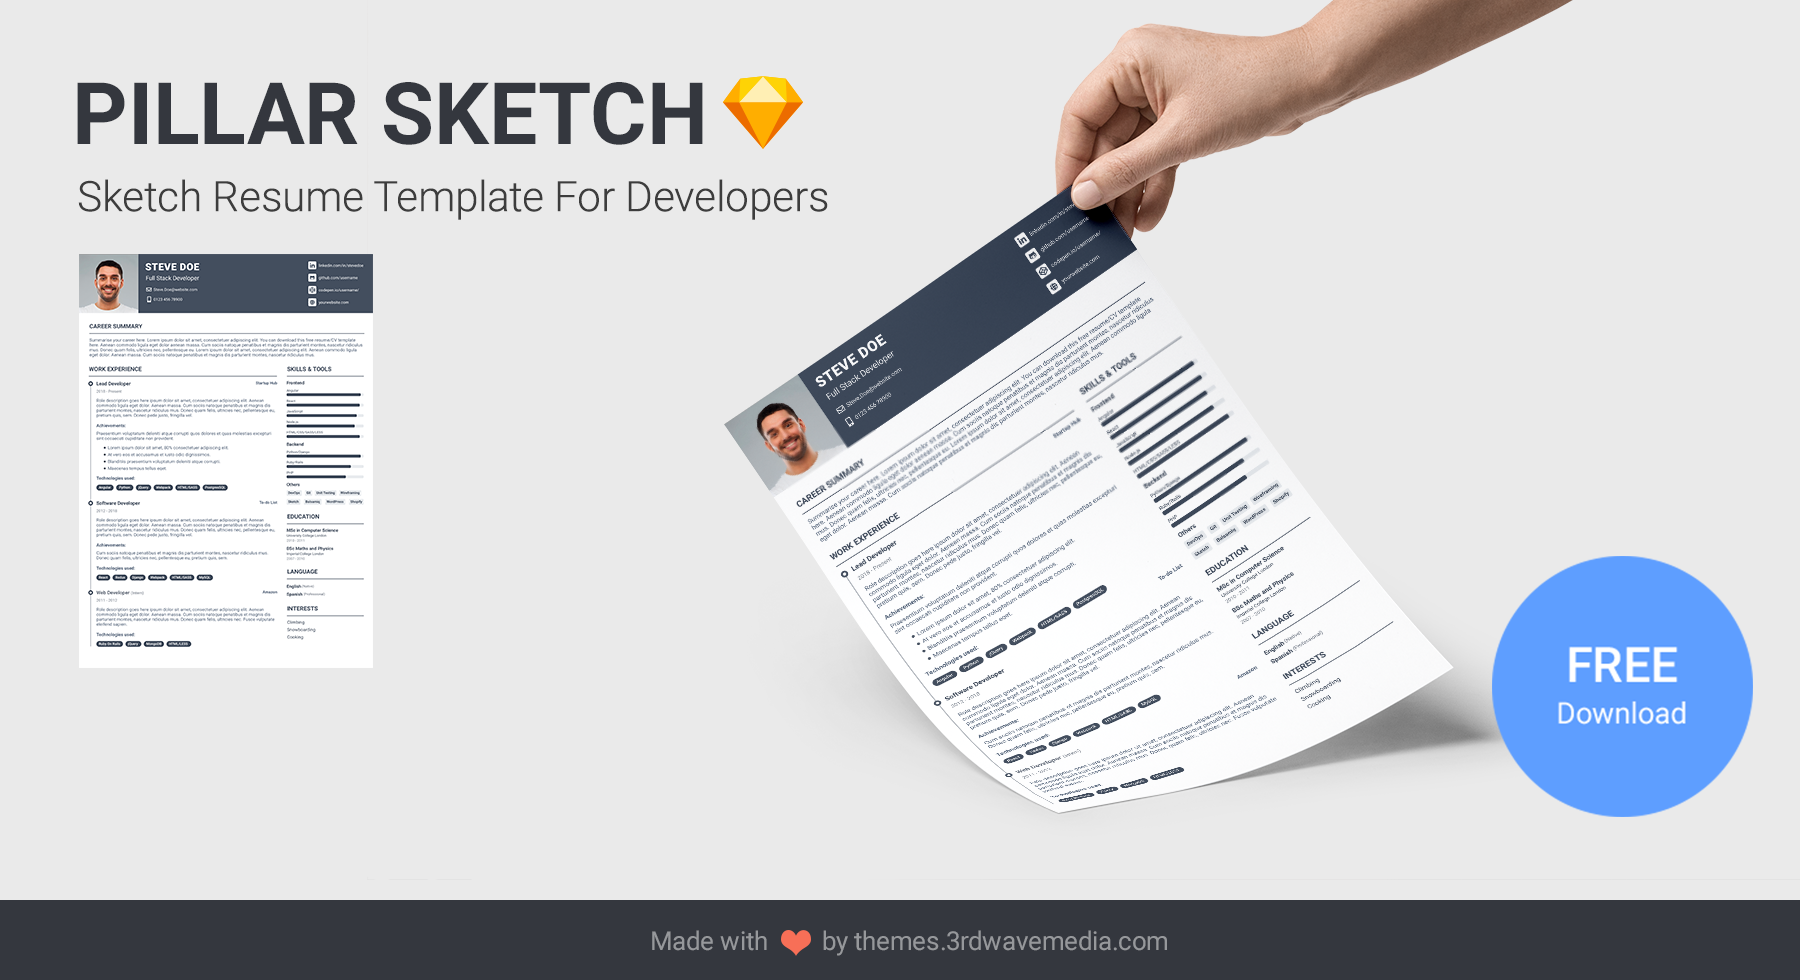 Pillar Sketch Resume Template For Developers